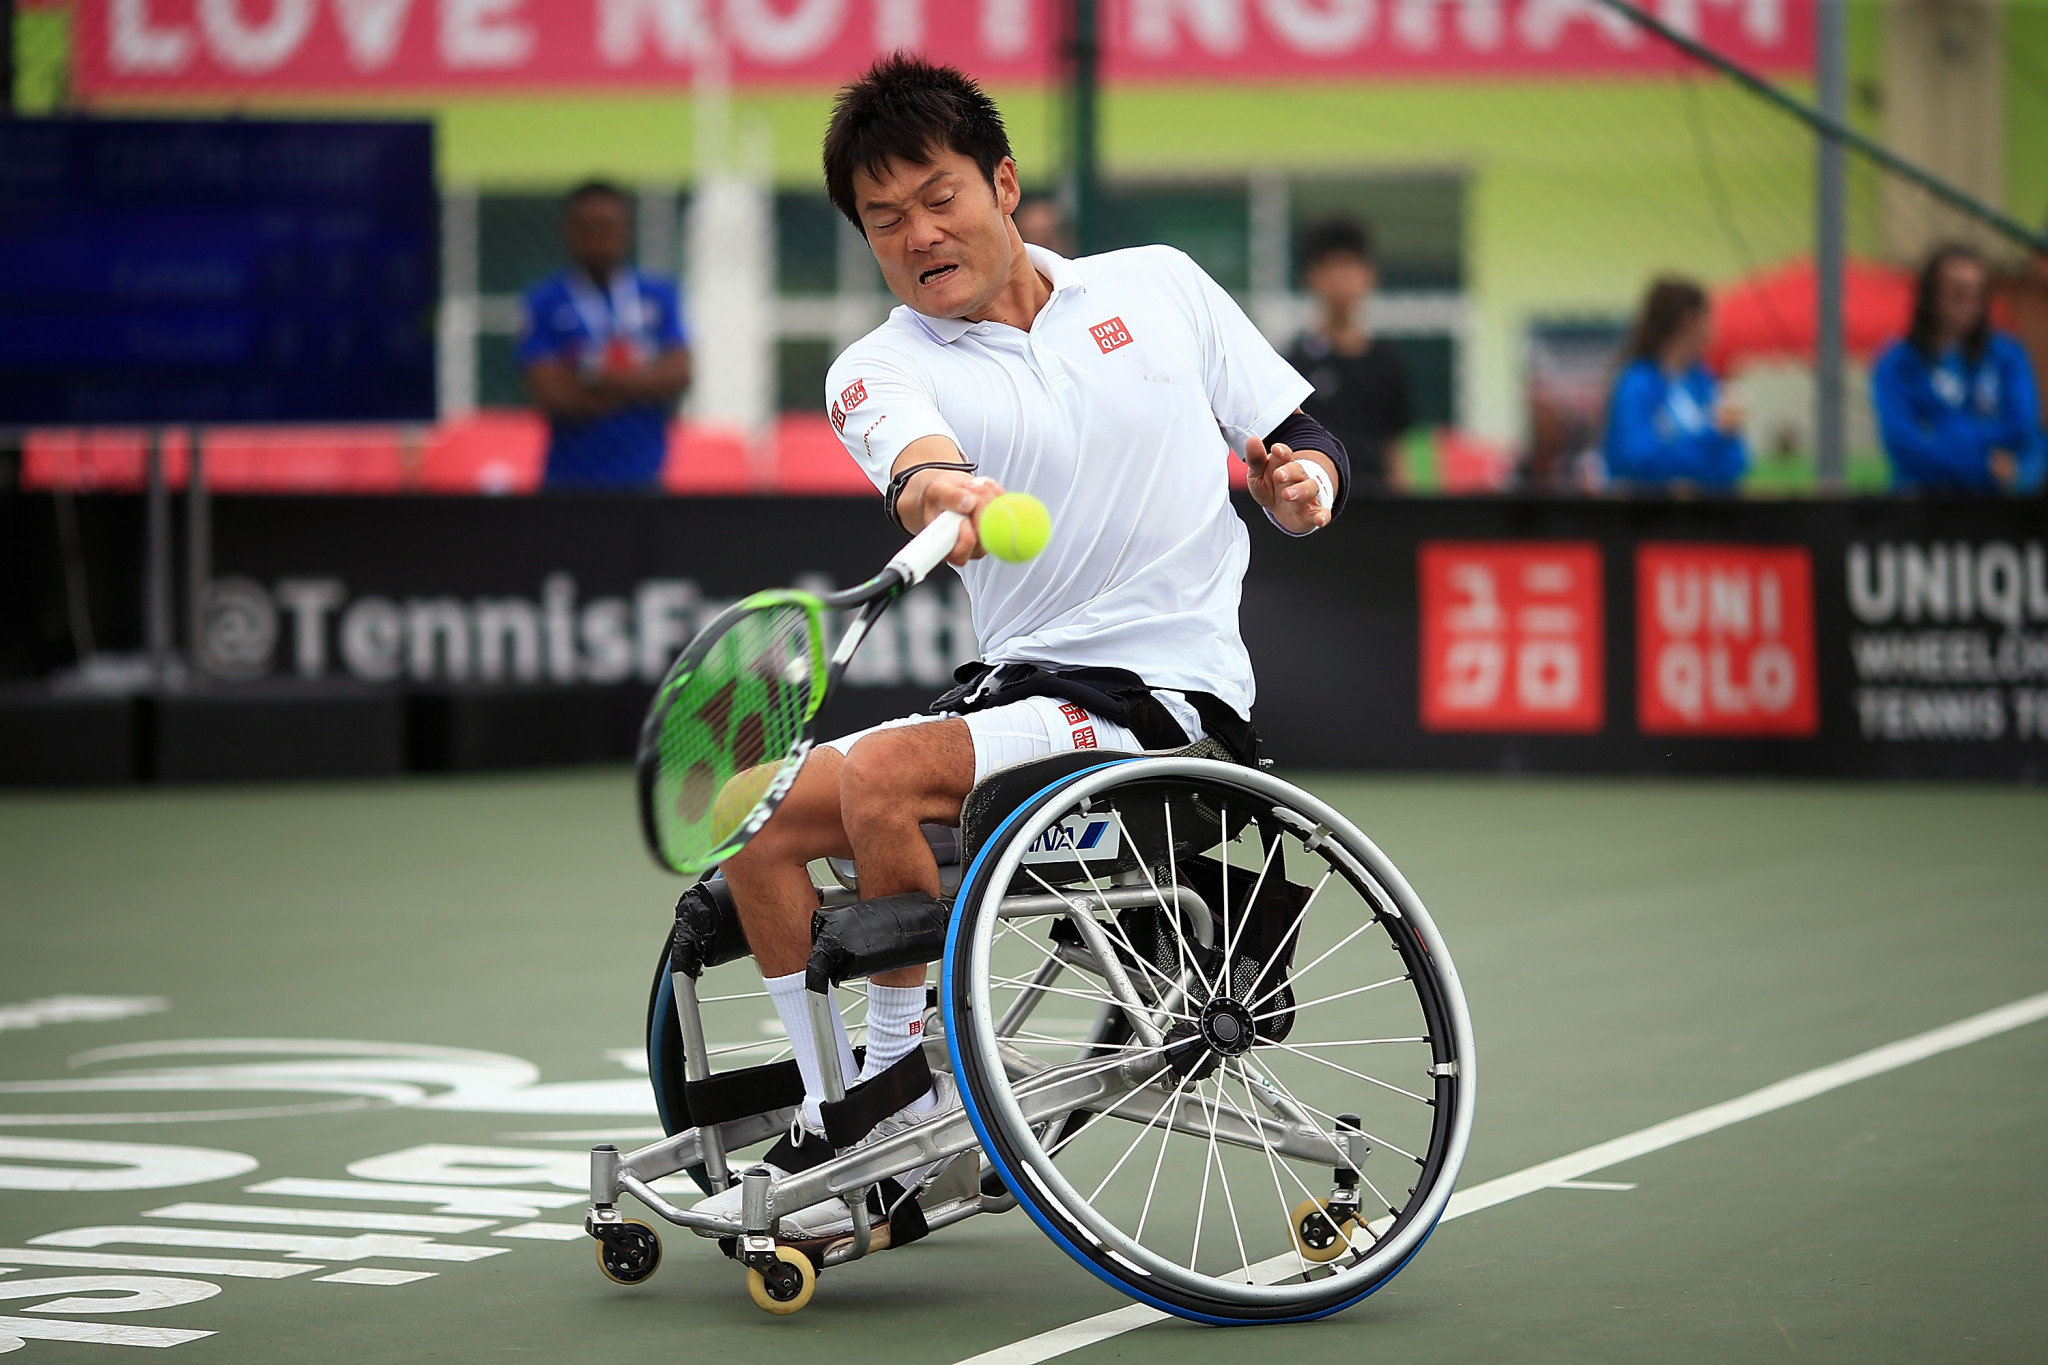 Entries announced for Wheelchair Tennis Masters in Orlando